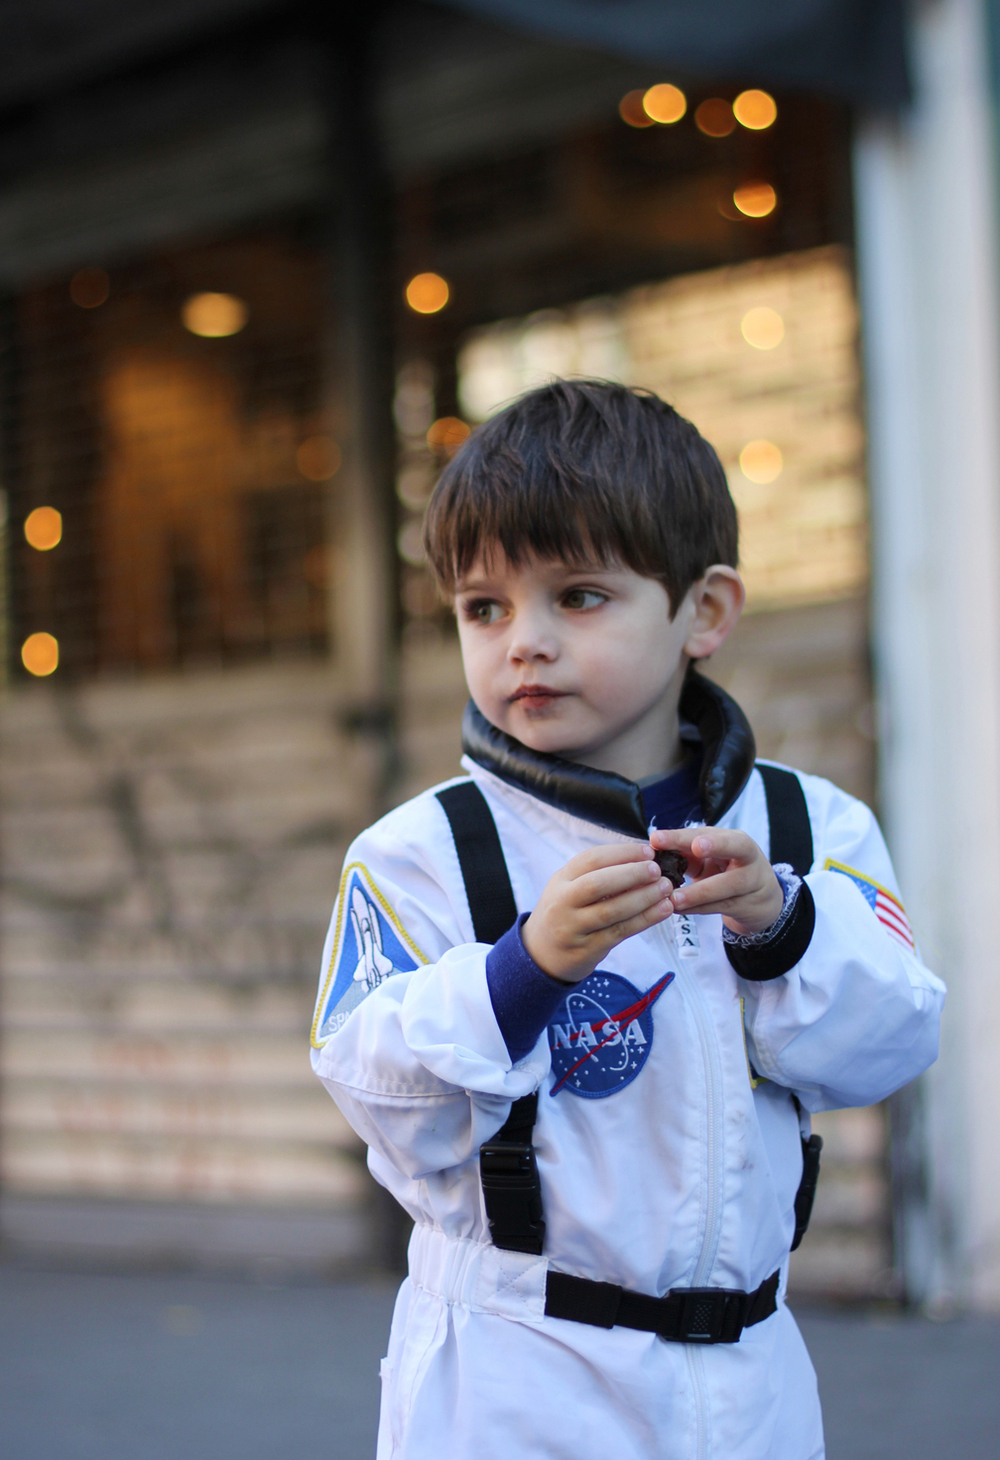 Our little astronaut.